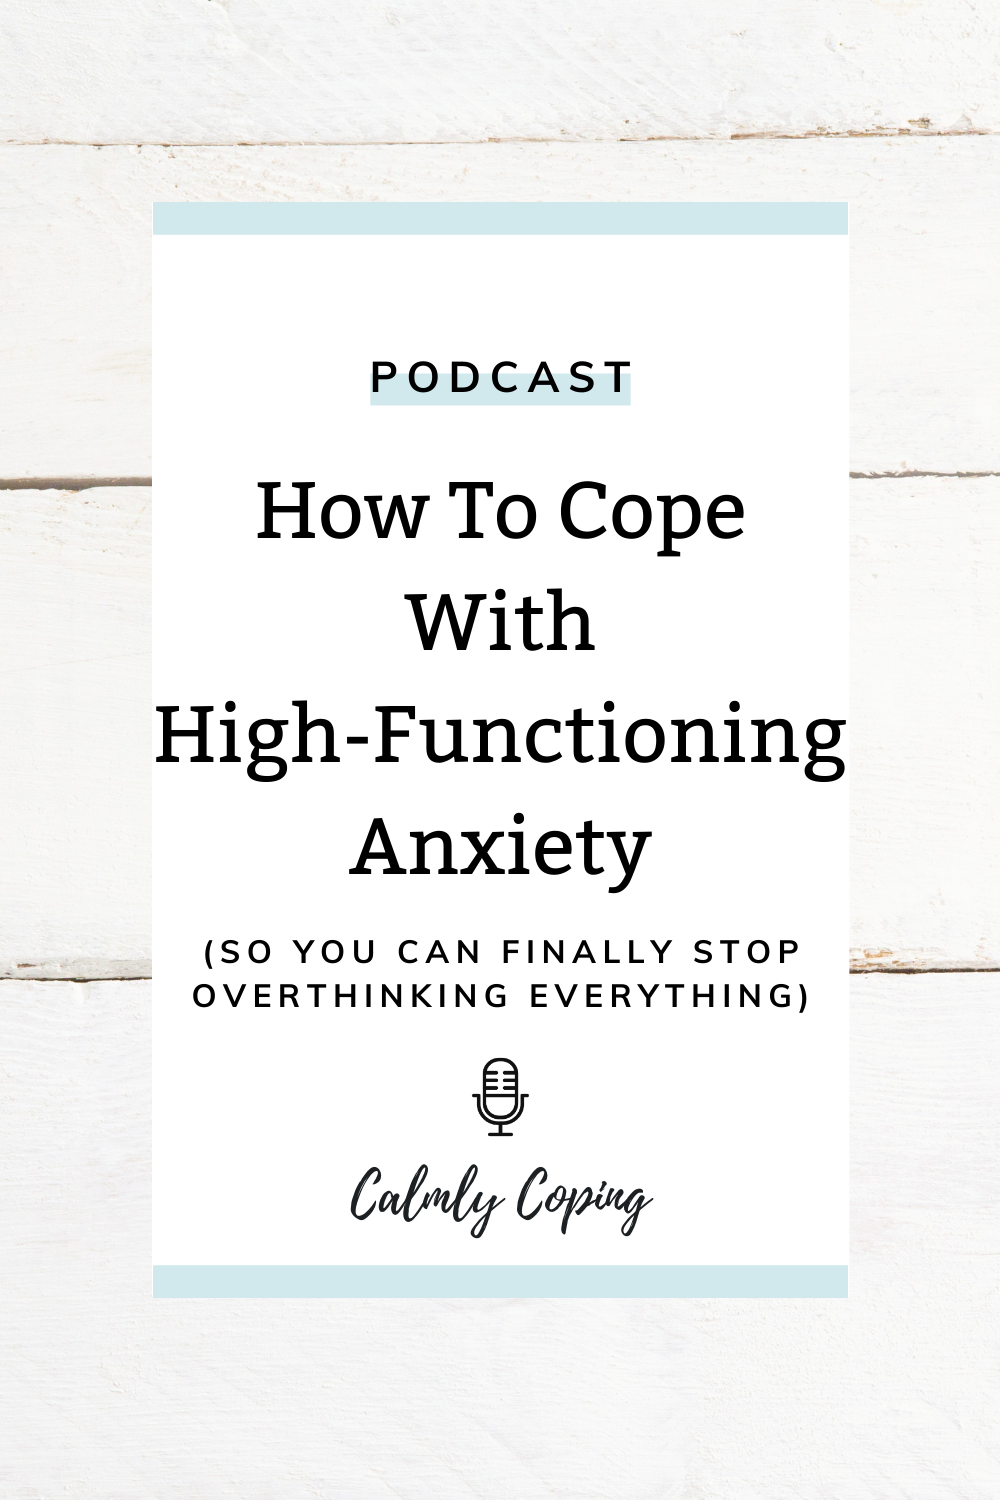 4 Tips To Cope With High-Functioning Anxiety